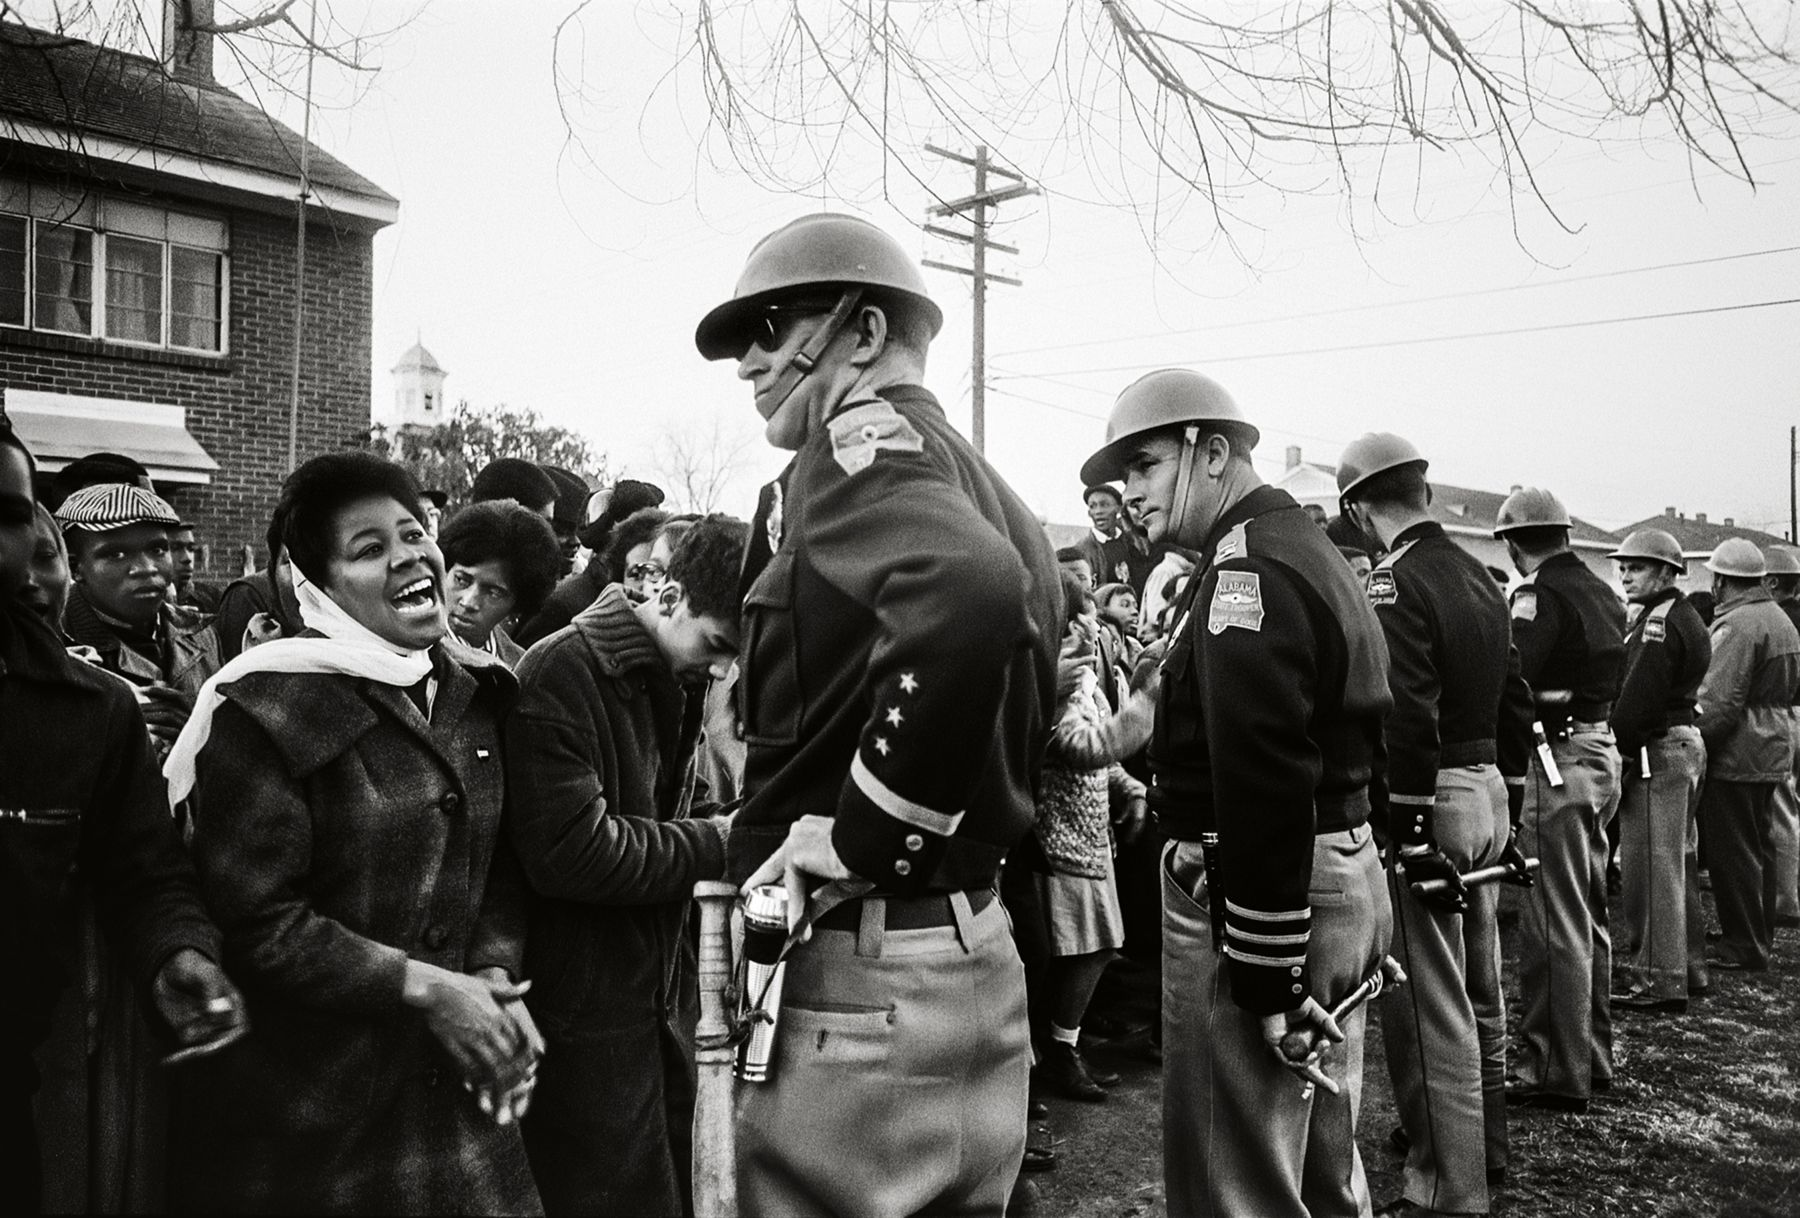 Demonstrator (Laughing) and Trooper, Philadelphia, Mississippi, 1964, 16 x 20 Inches, Silver Gelatin Photograph, Edition of 25